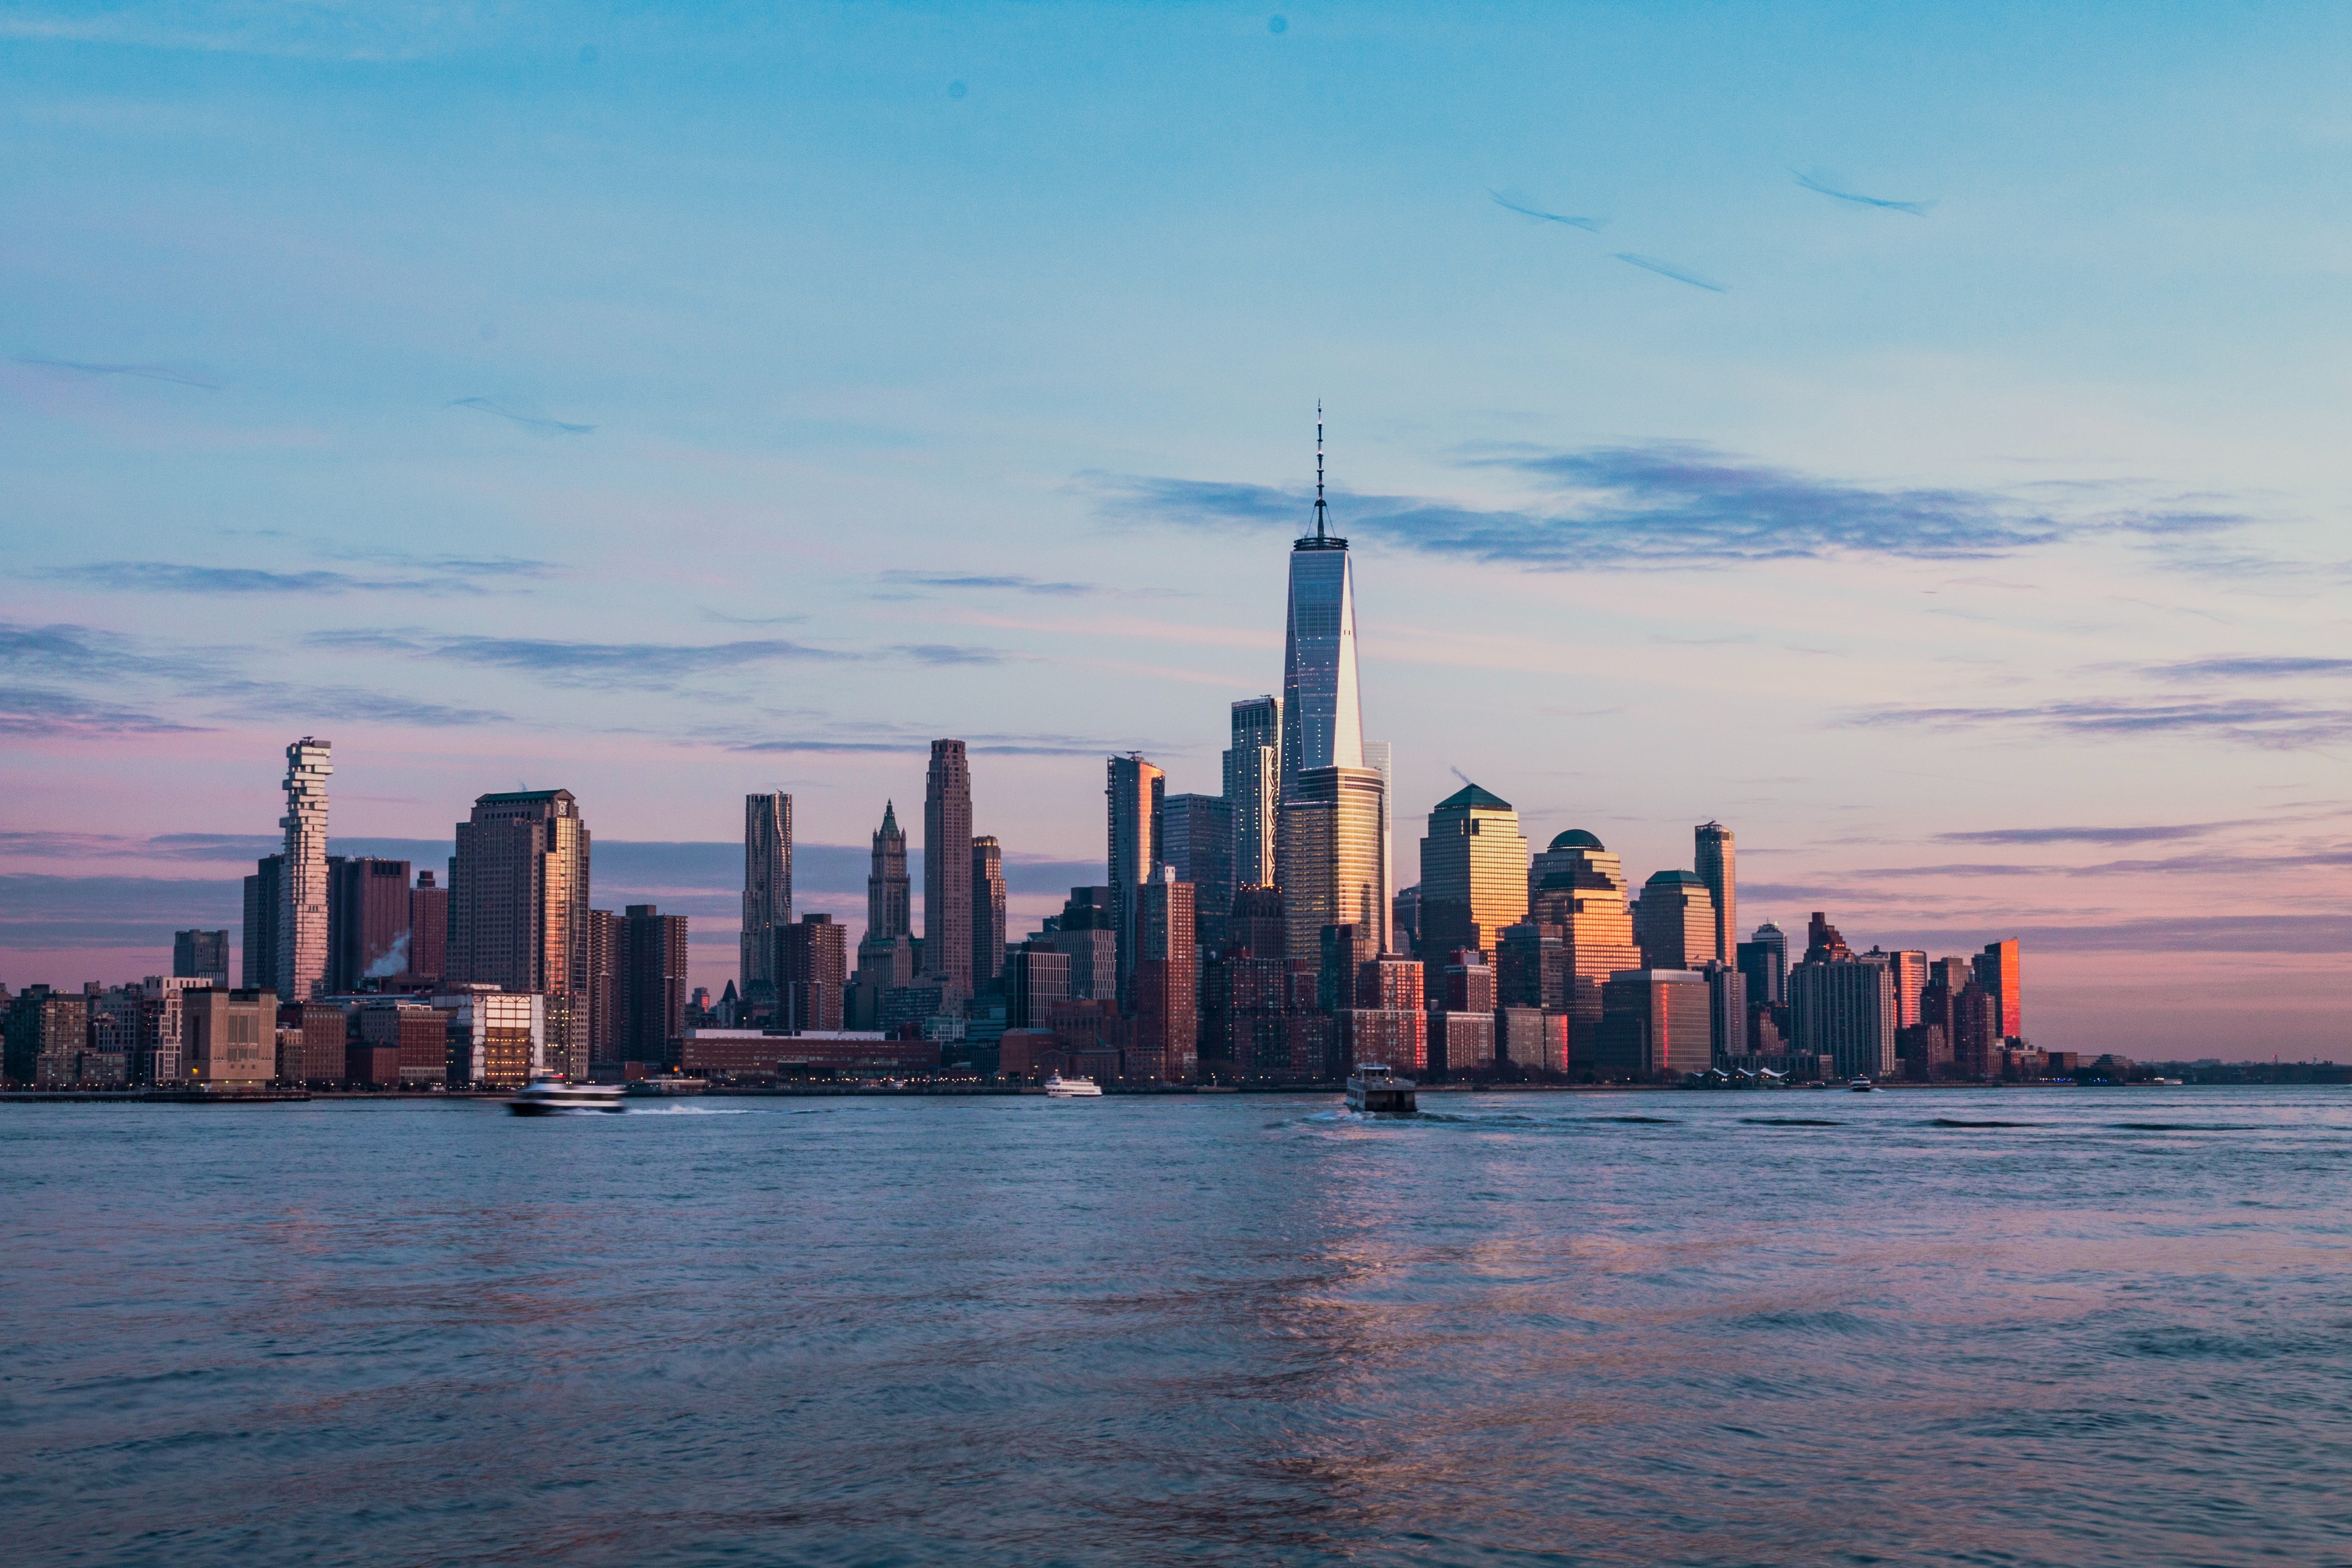 Digital Transformation experts, intive, expand US operations with new base in New York City